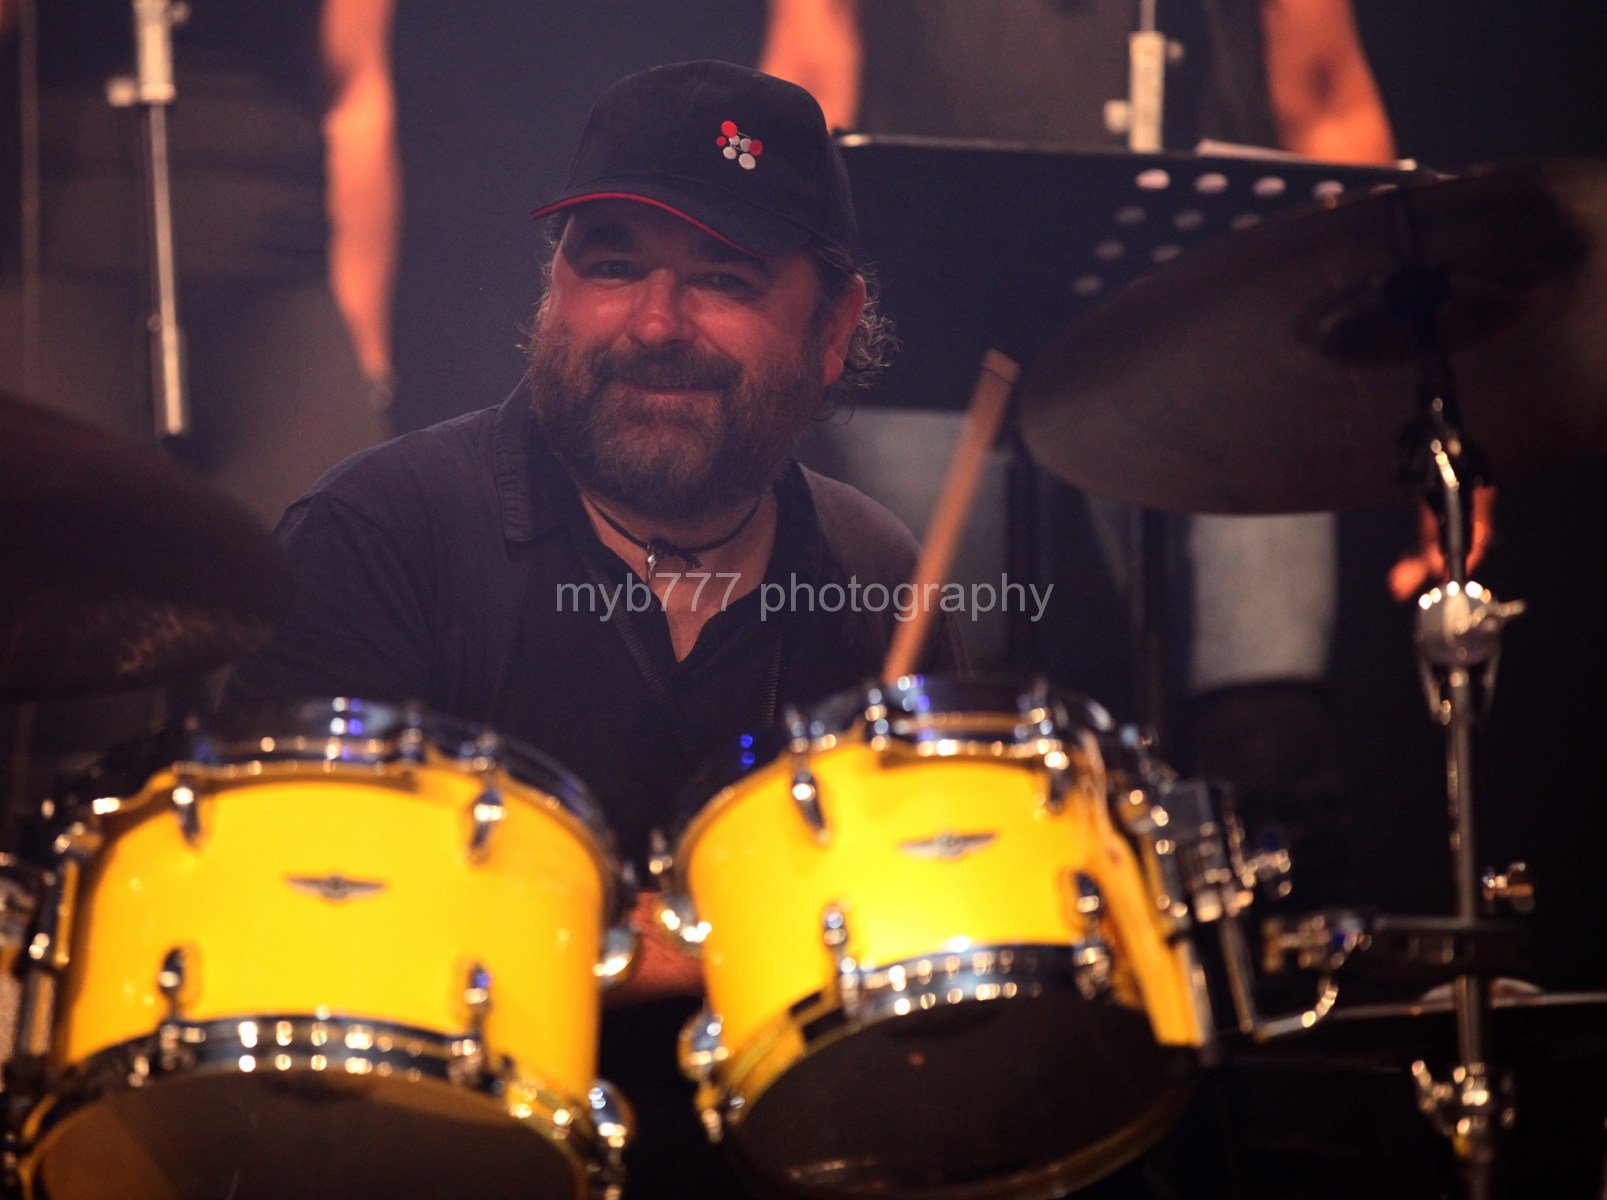 Drummer-Photography-by-myb777-41